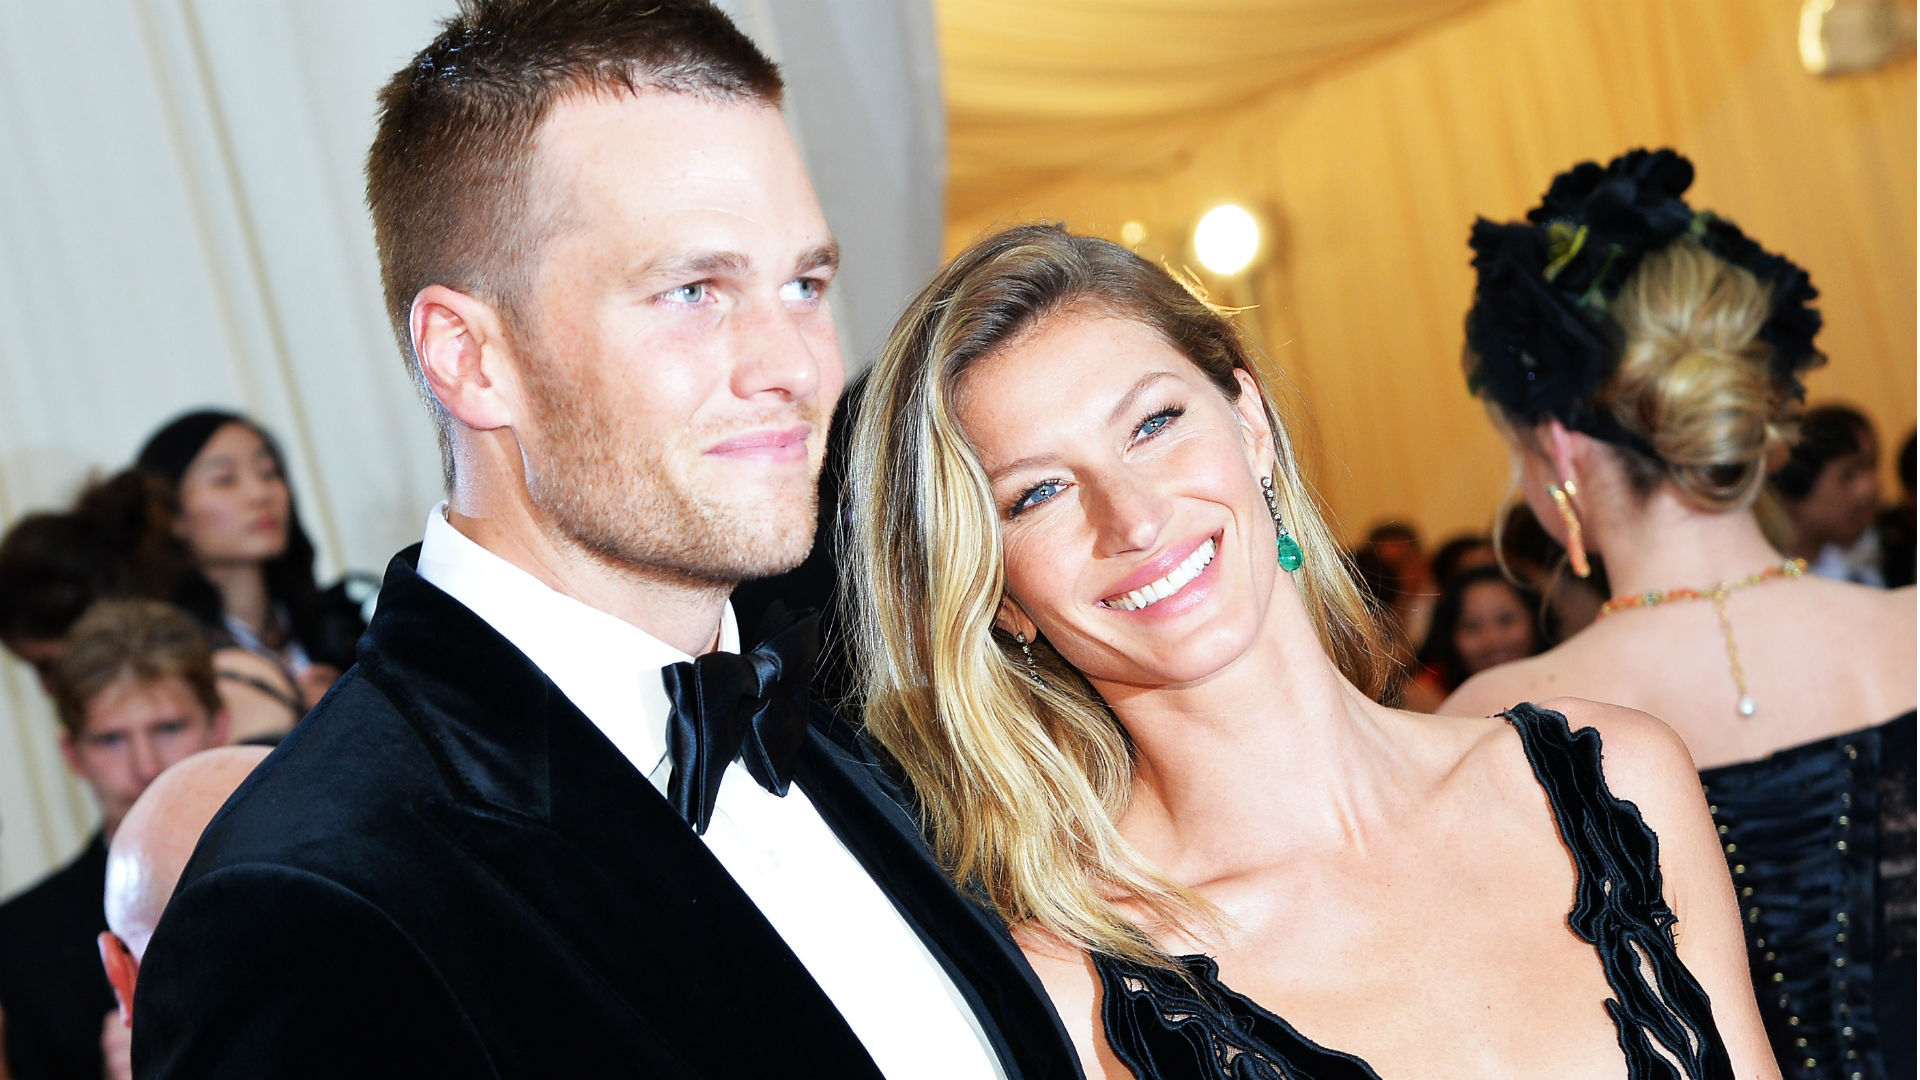 Tom Brady, Gisele too famous for exclusive country club, report says